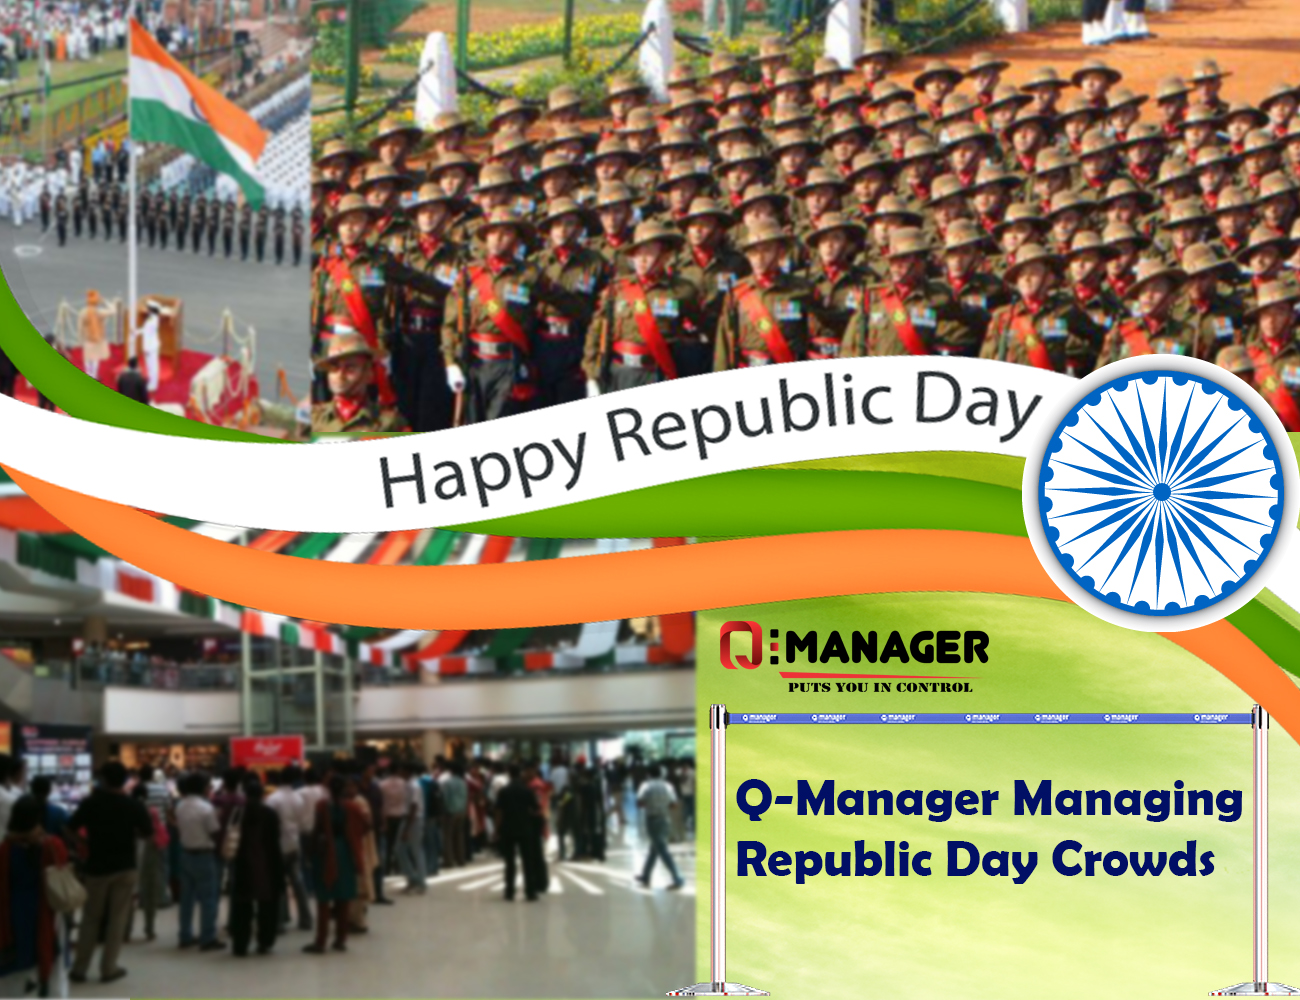 Q-Manager Managing Republic Day Crowds